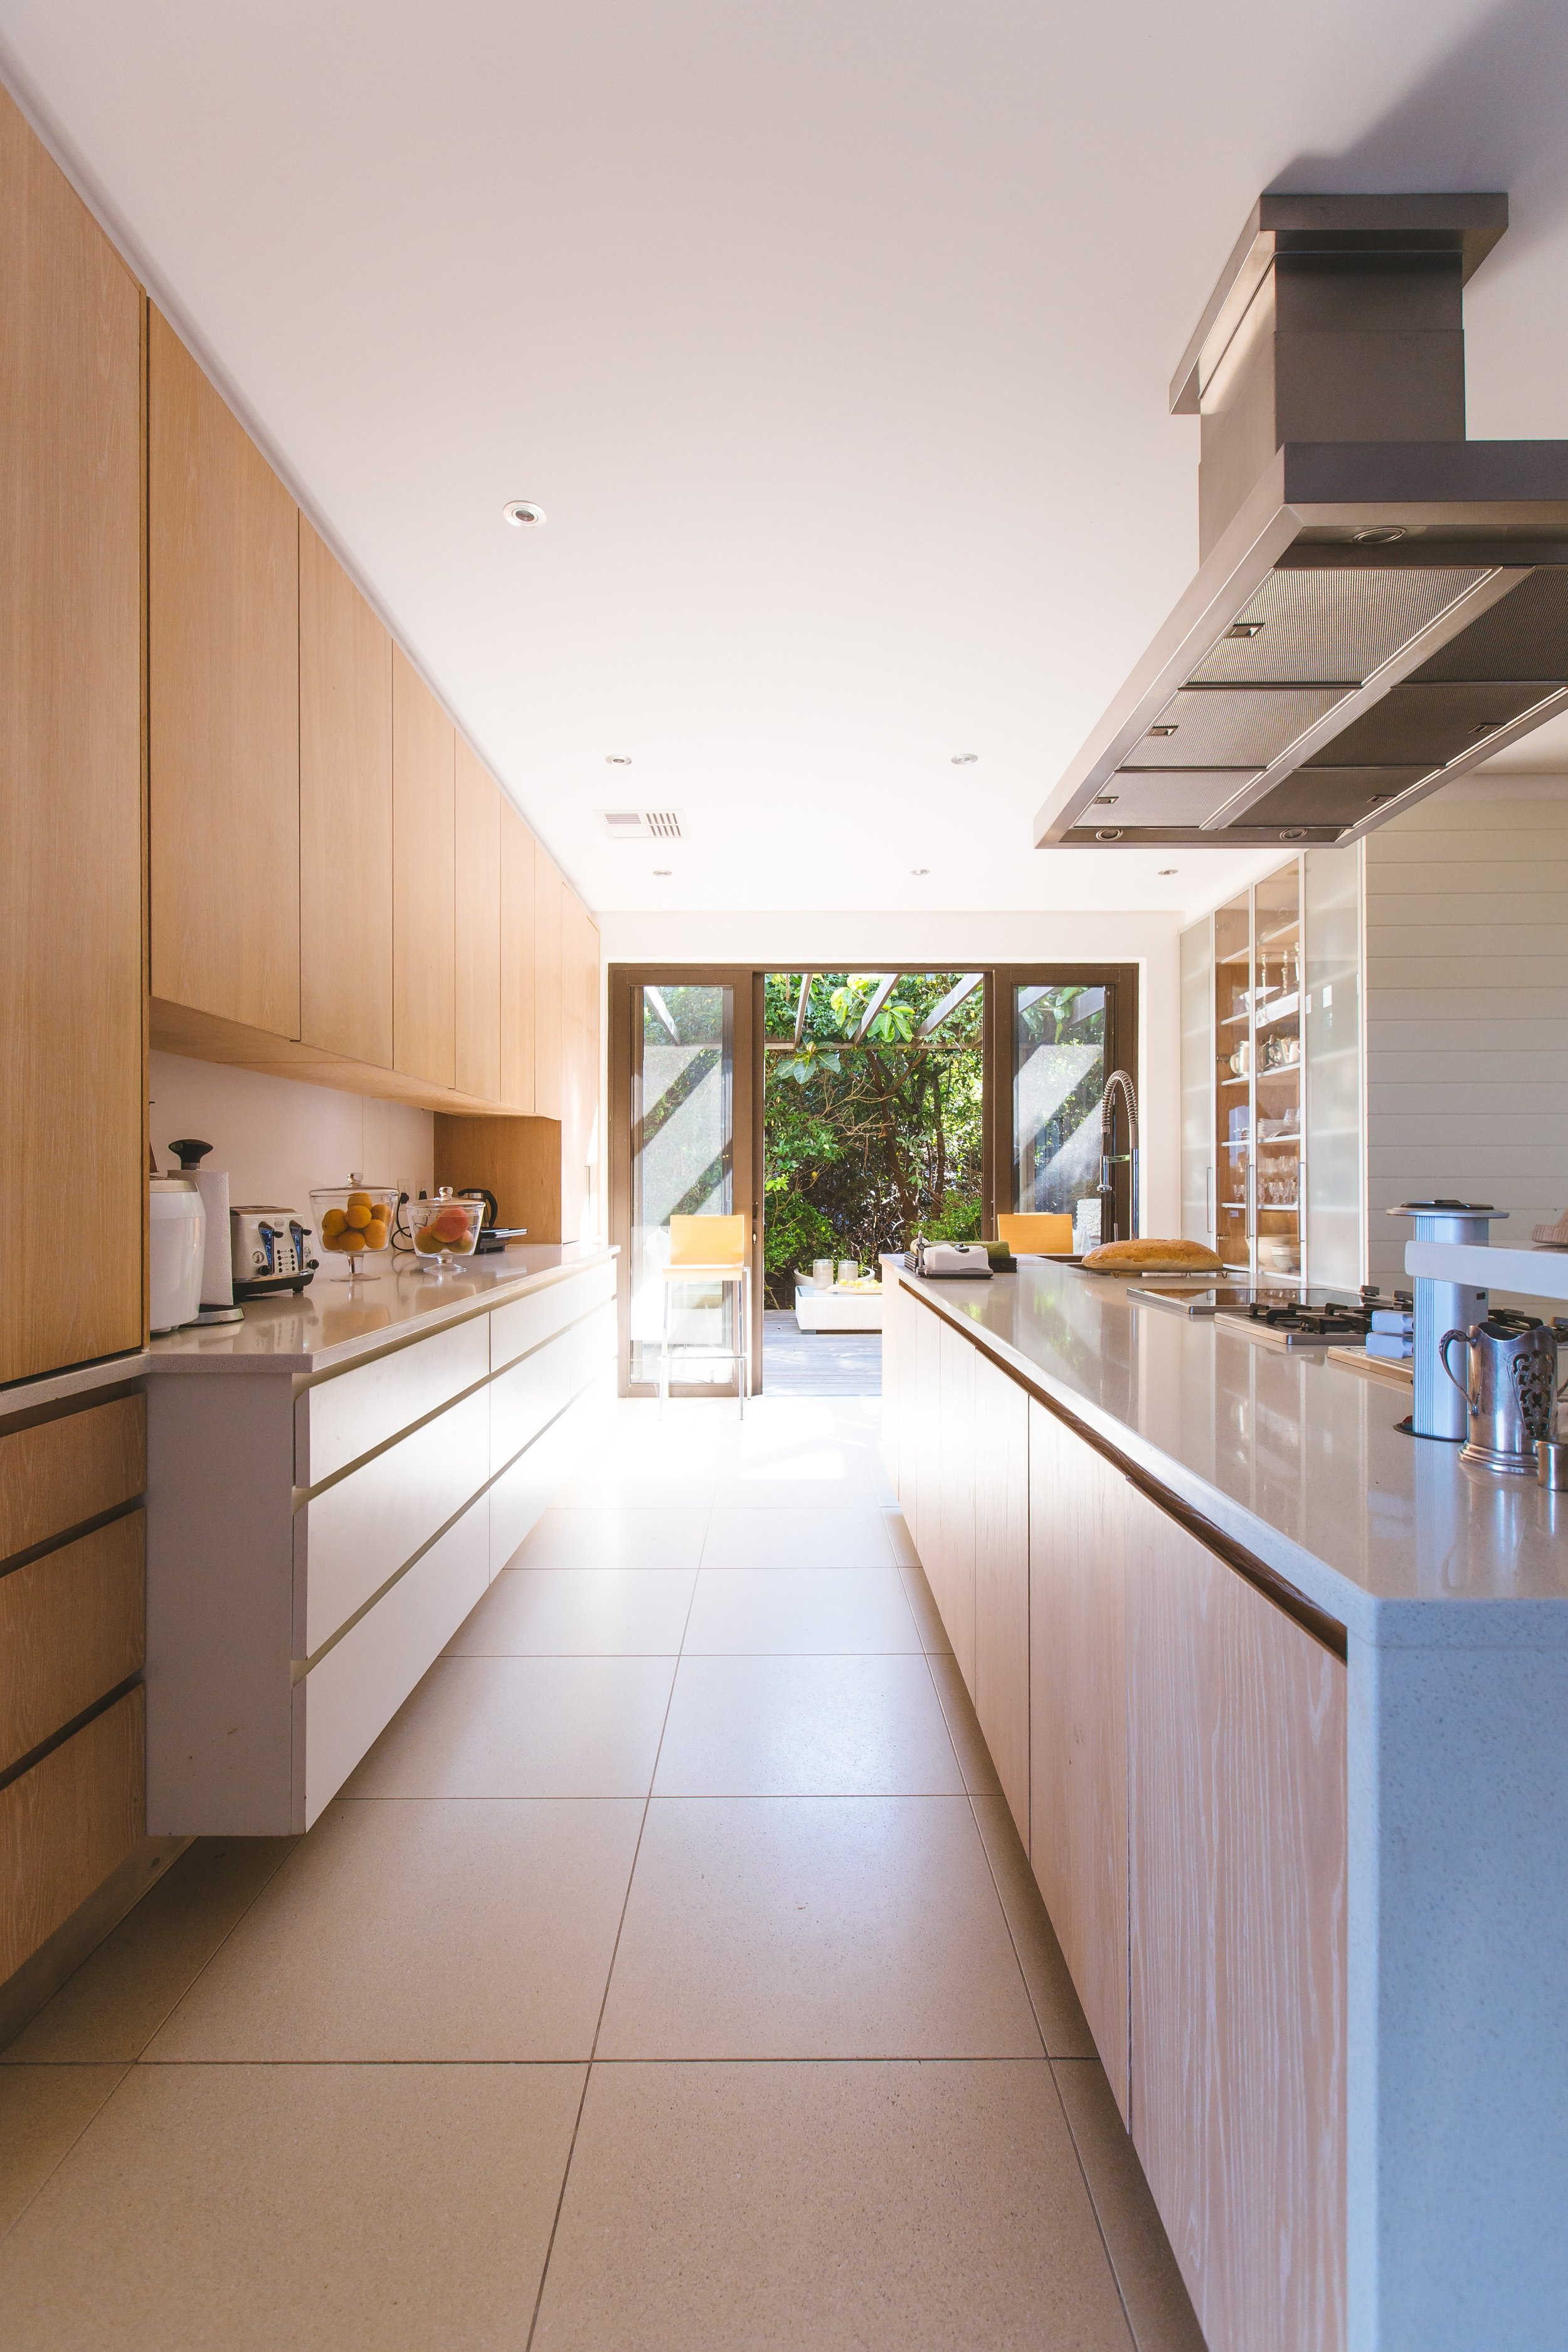 Custom Remodels & Architectural Additions - Experience a truly custom architectural and remodeling service that focuses on project management and problem solving. I meet your goals, define your space, and work with your aesthetic and budget. Optimize and update your home with my sustainable concepts. No space is too small or too limited— I envision and deliver on remodels and architectural additions so that you can feel the difference.